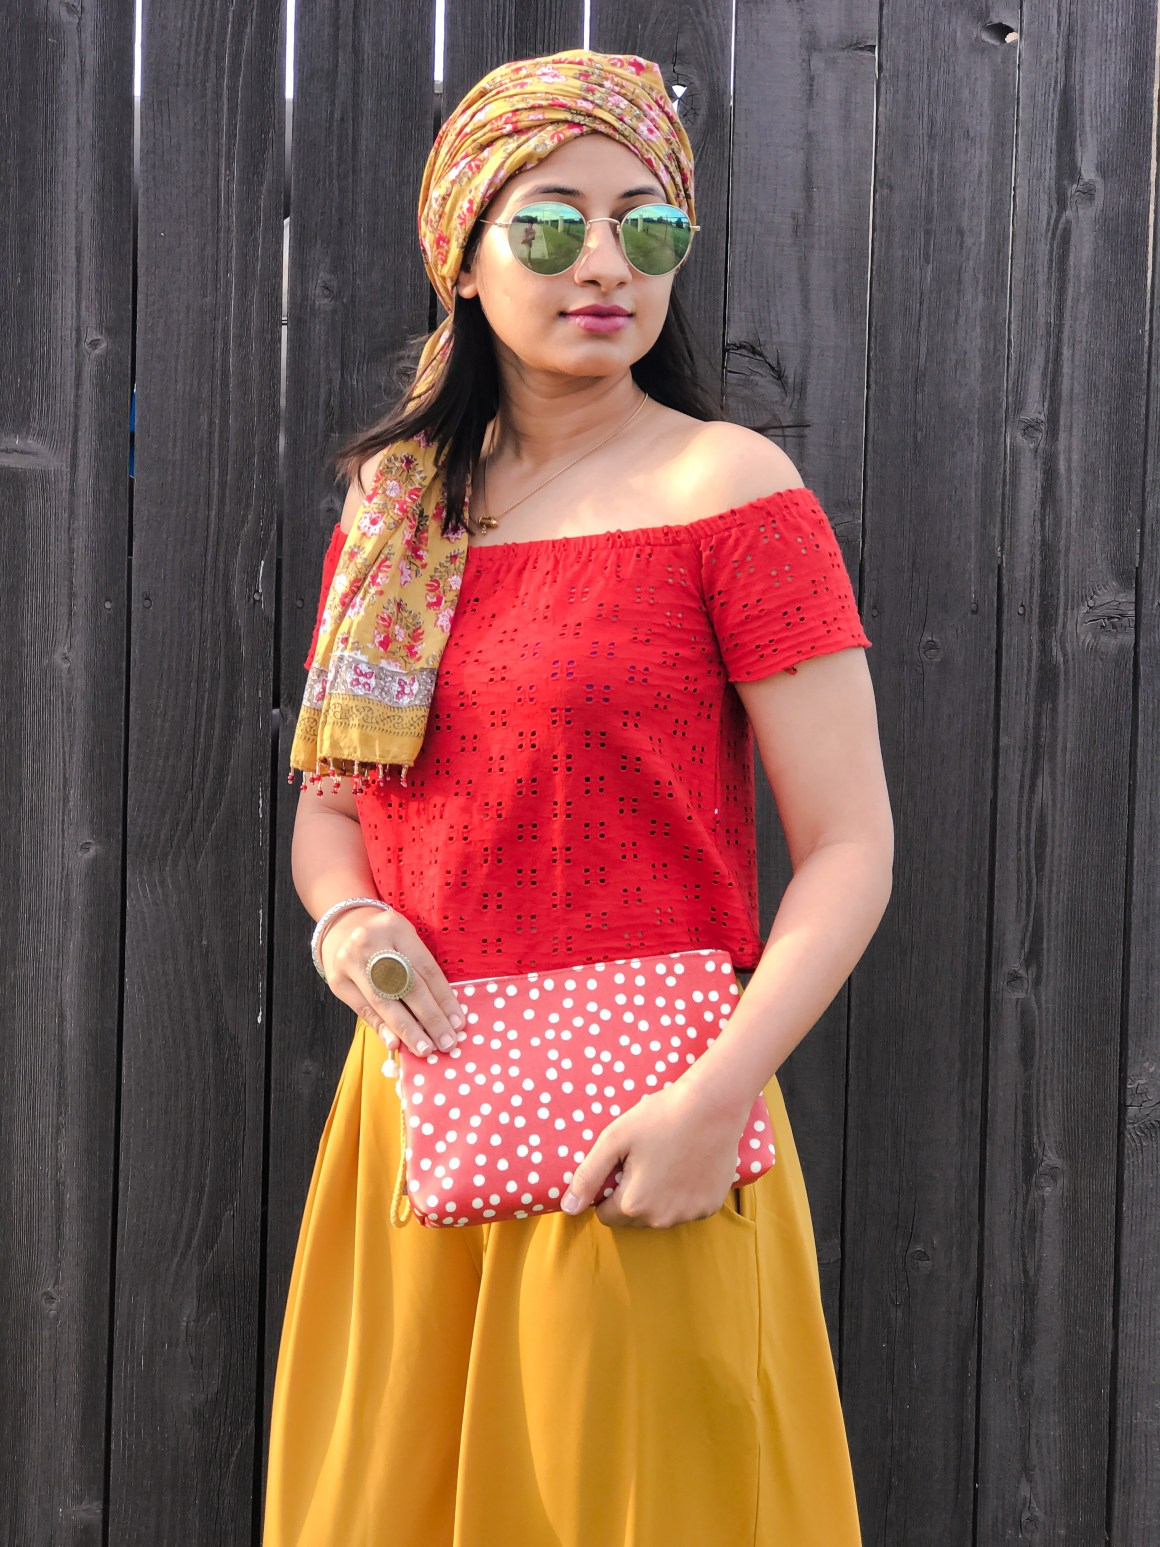 Red off-shoulder top - Zara, Wide leg yellow pants - Zaful, Madewell pouch.